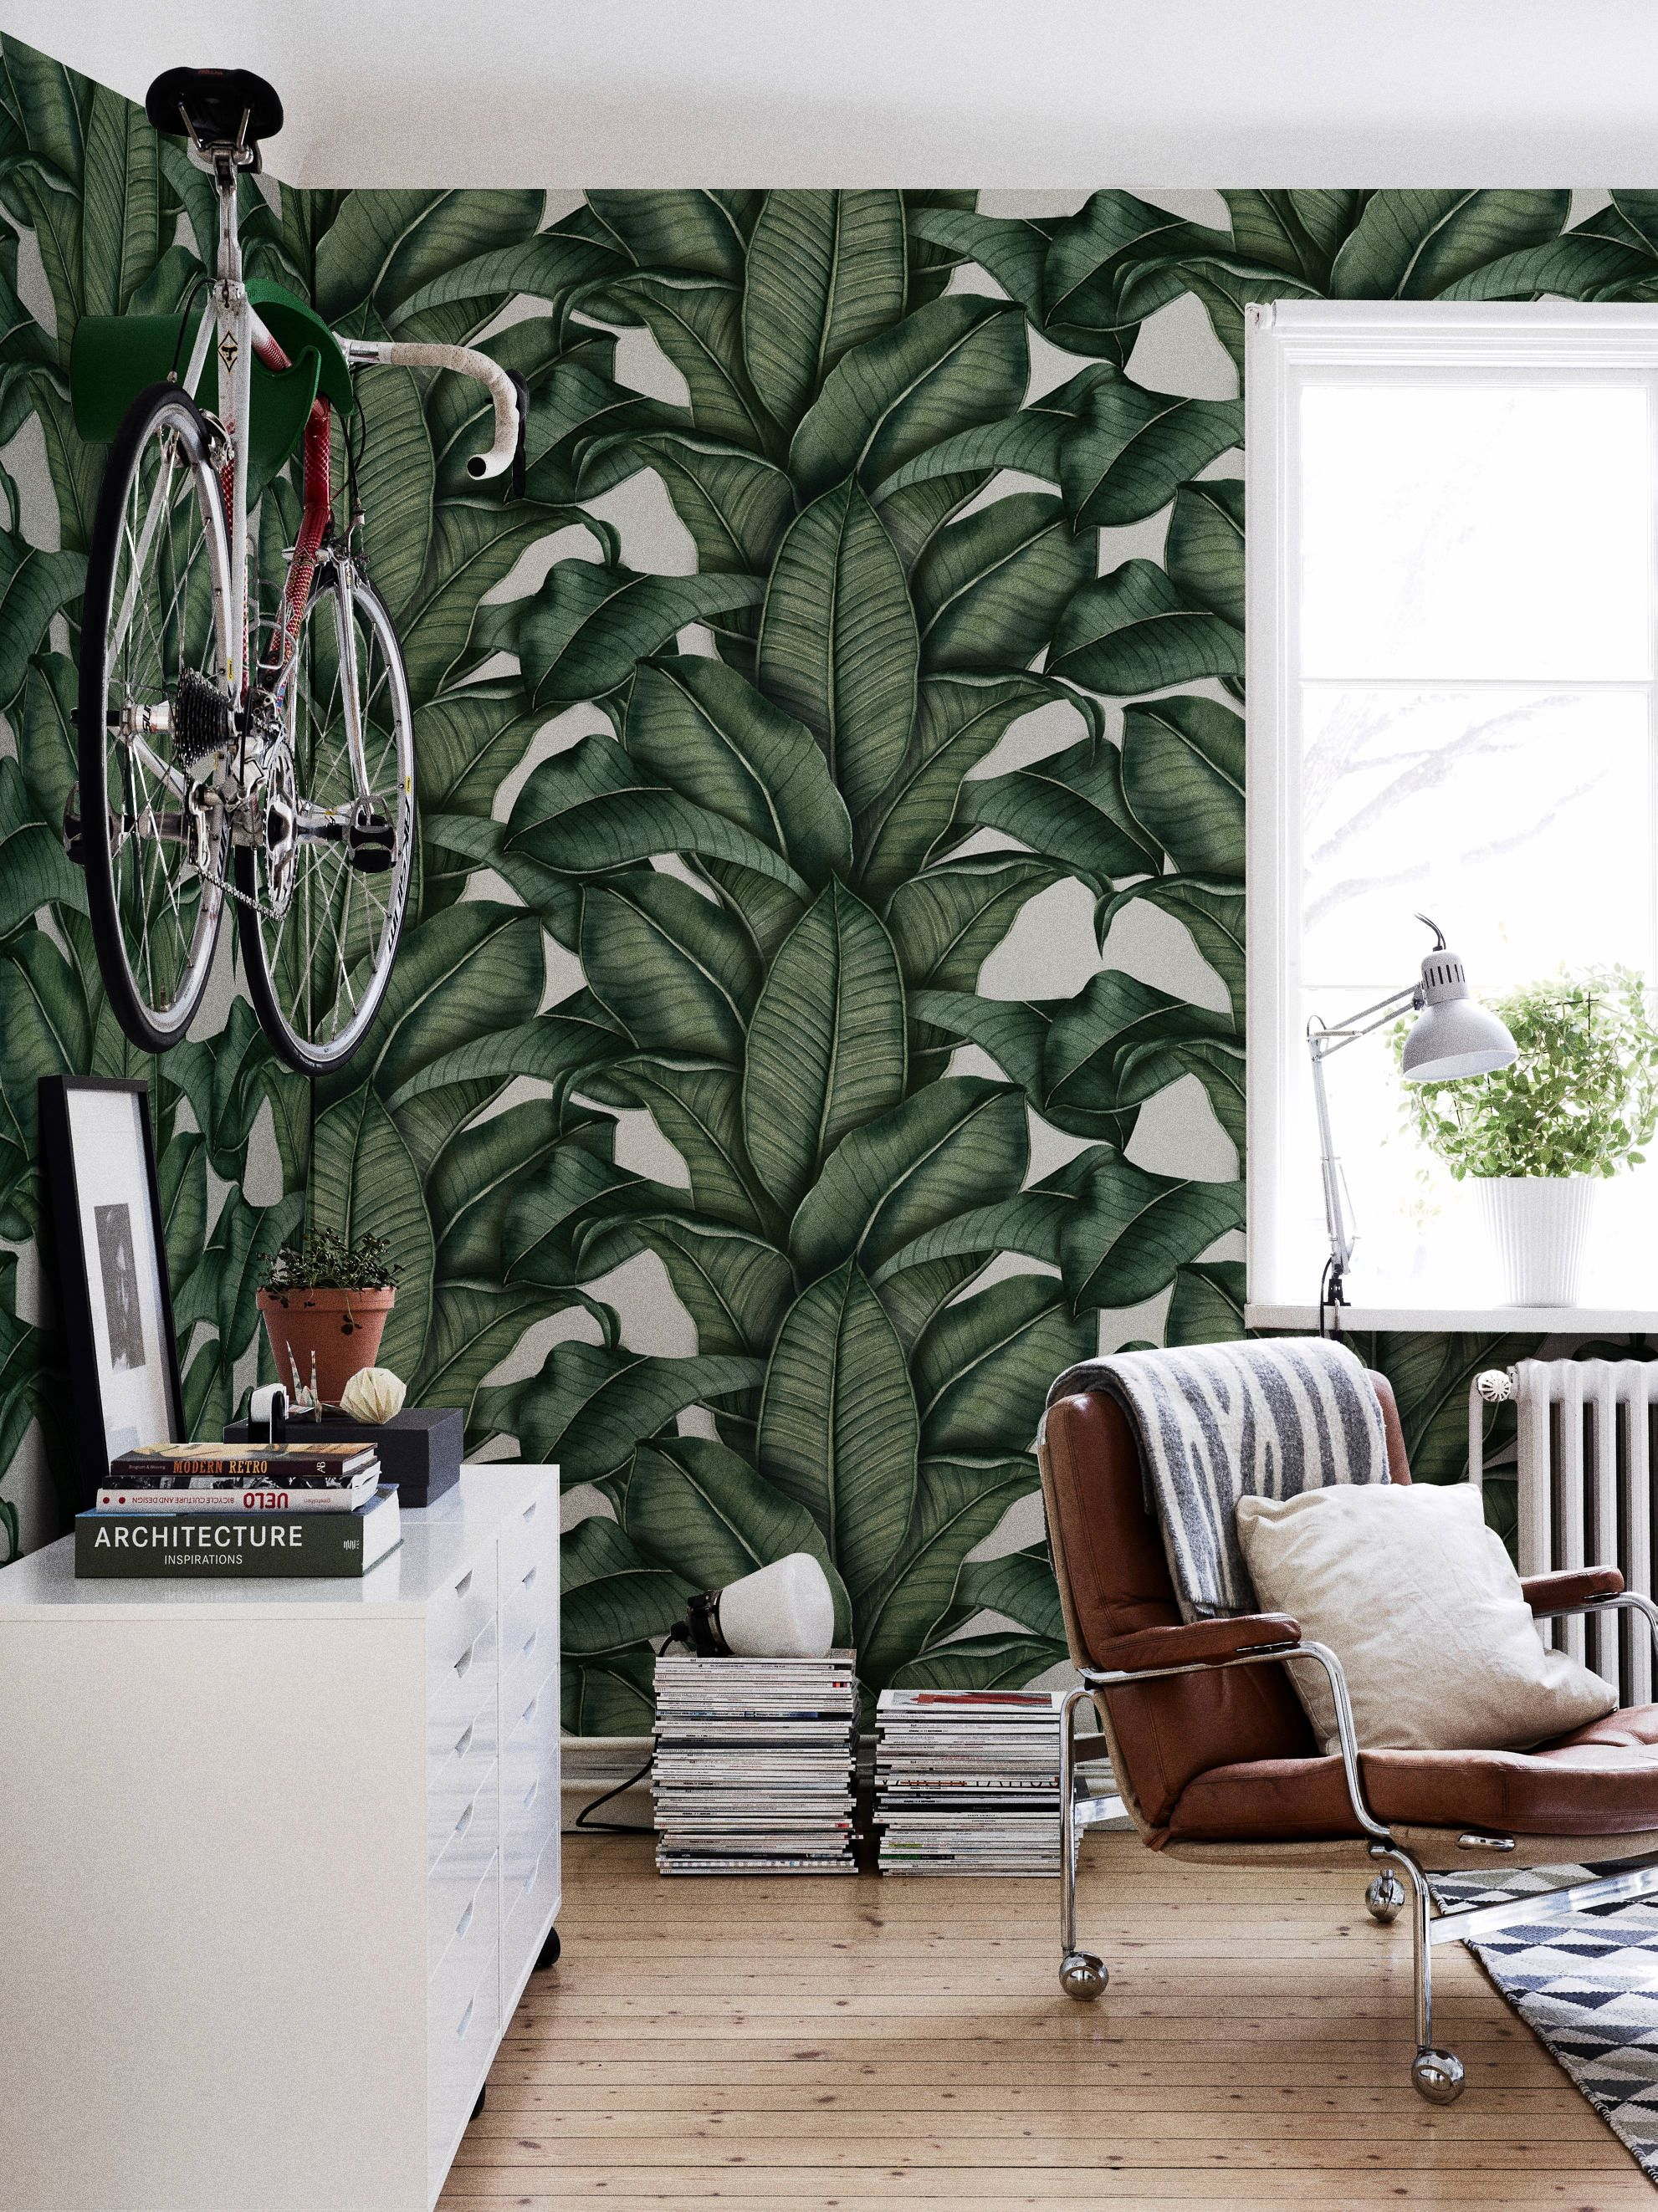 Trust Banana Leaf Removable Wallpaper It Can Create A Totally New Interior In Your Home In Just One Peel Stick Mo Banana Leaf Wallpaper Wall Murals Wallpaper